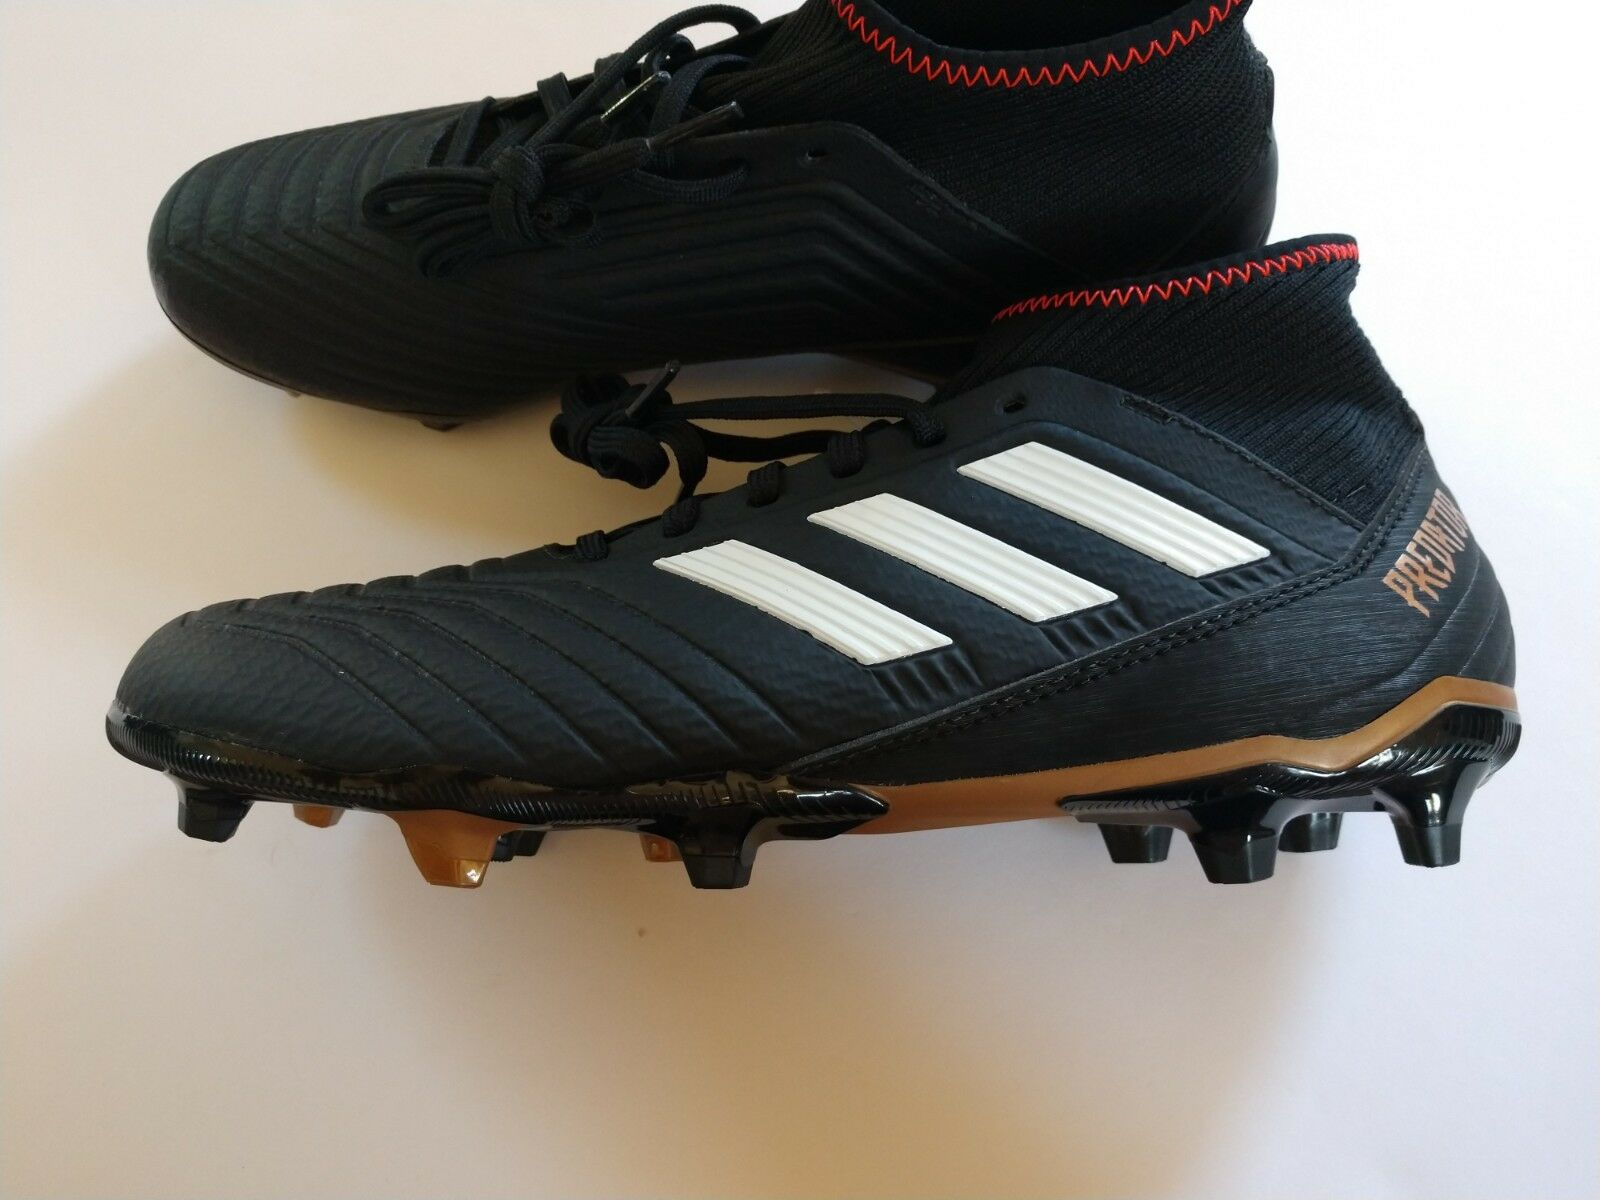 Adidas Predator 18.3 FG Men's 9.5 Black New Soccer Cleats Shoes CP9301 New Black 68b8ec